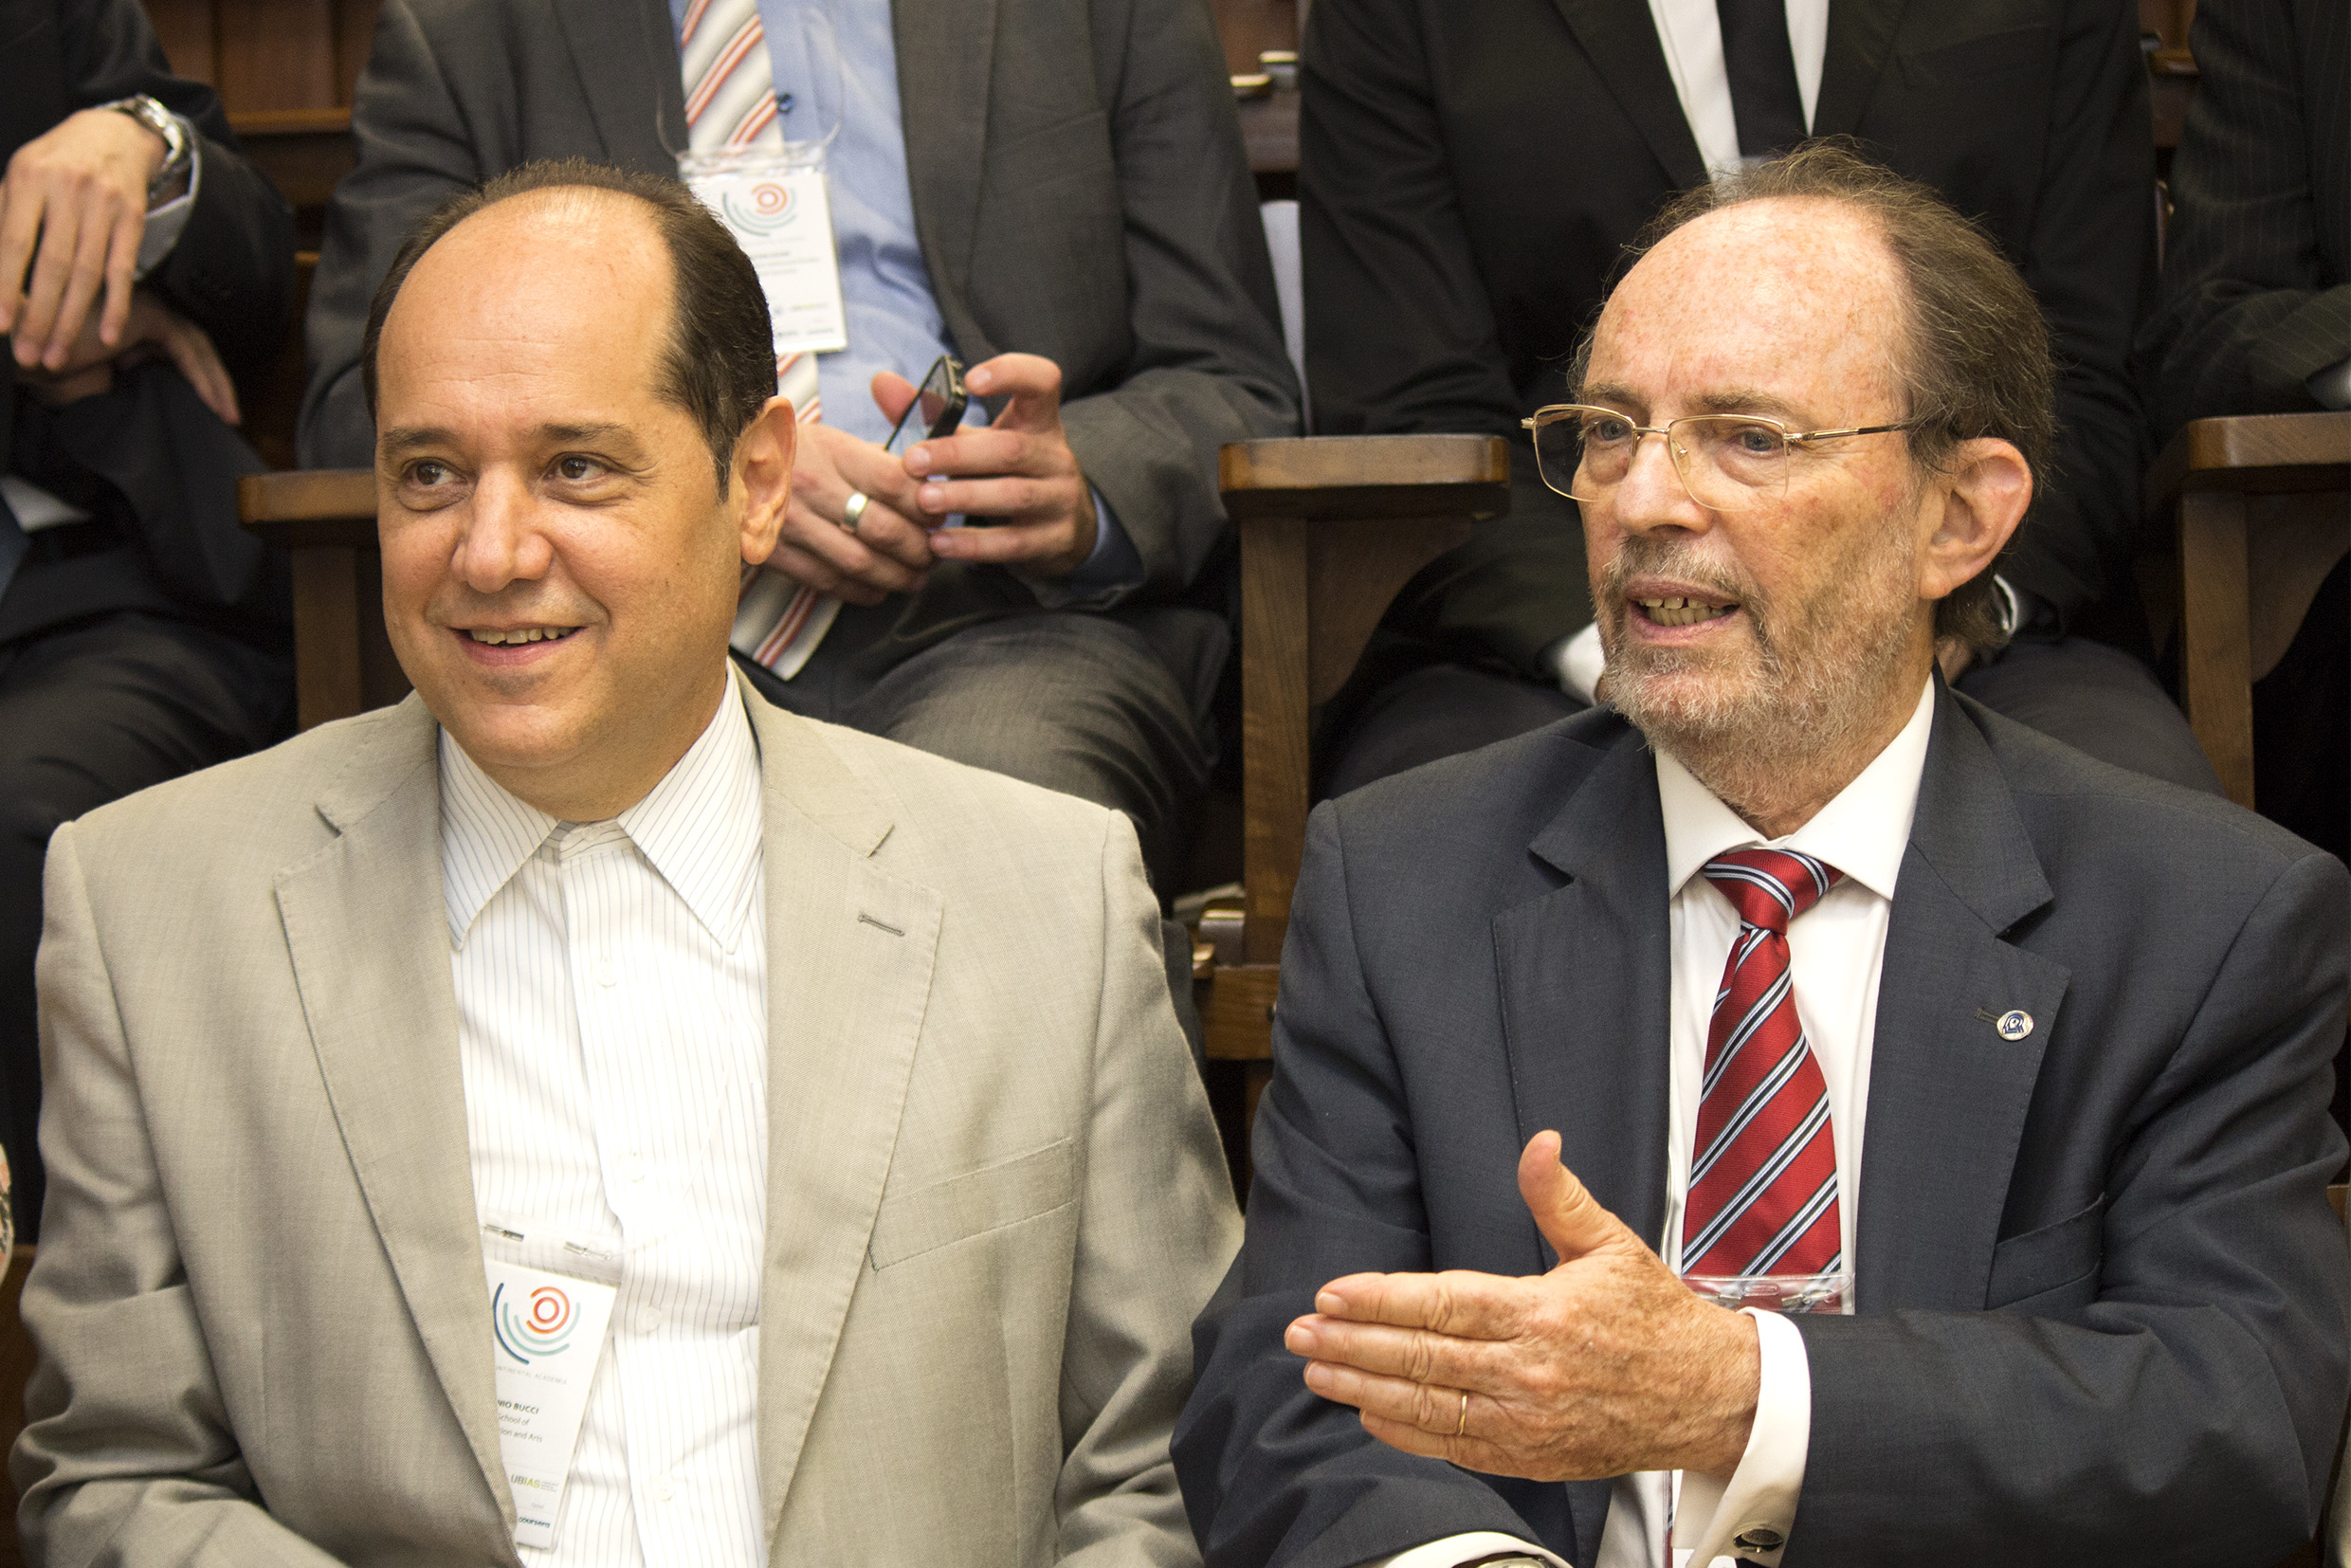 Eugenio Bucci and Hernan Chaimovich at the opening of the Intercontinental Academia - April 17, 2015